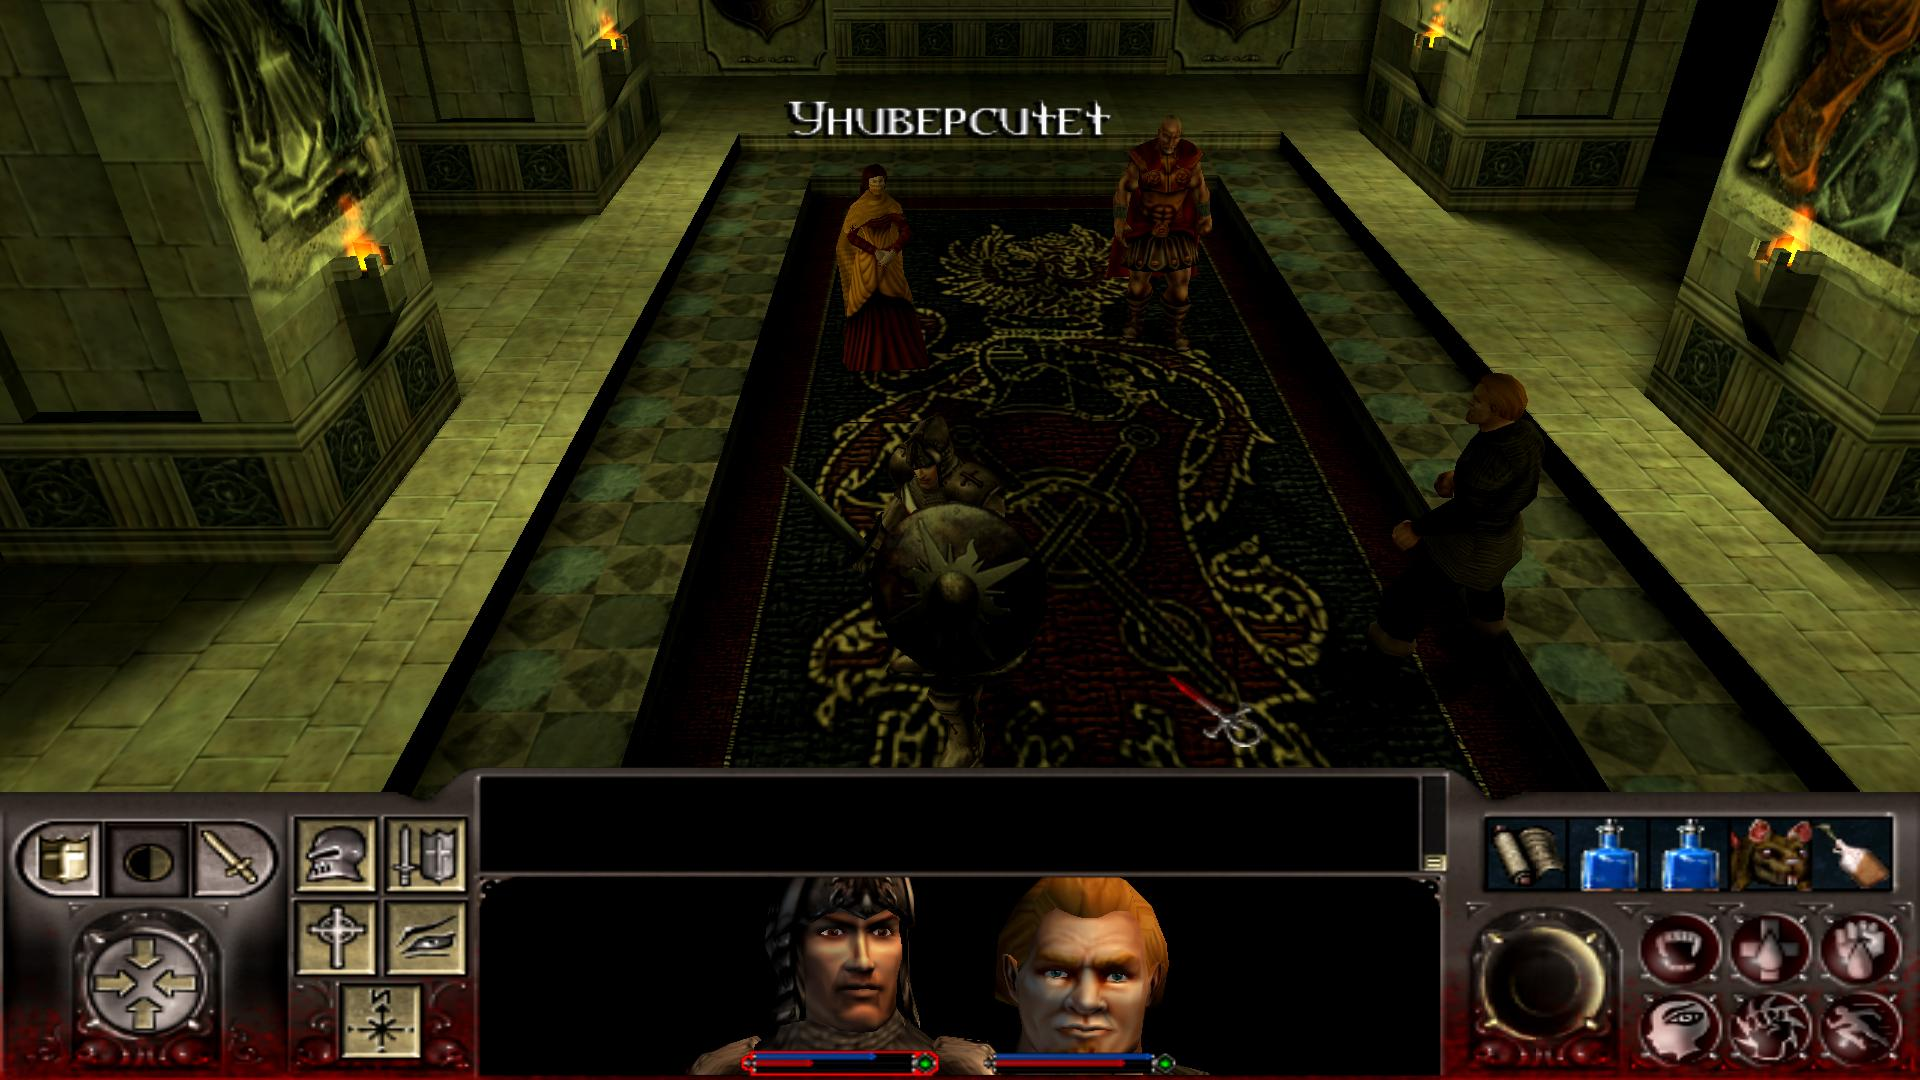 Disciplines are supernatural abilities used by kindred in vampire: the masquerade - bloodlines